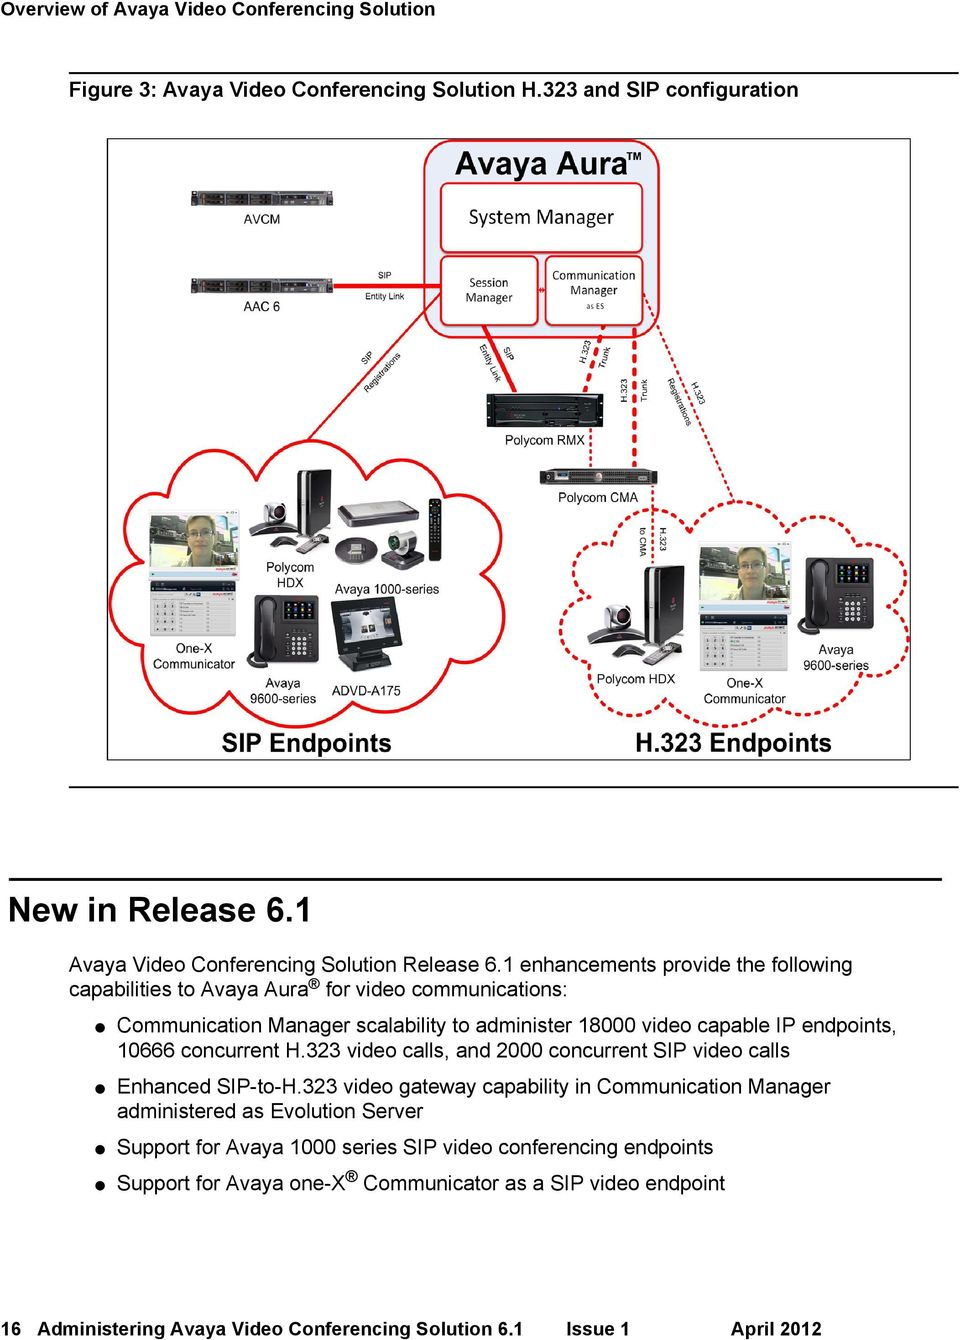 Administering Avaya Video Conferencing Solution Advanced